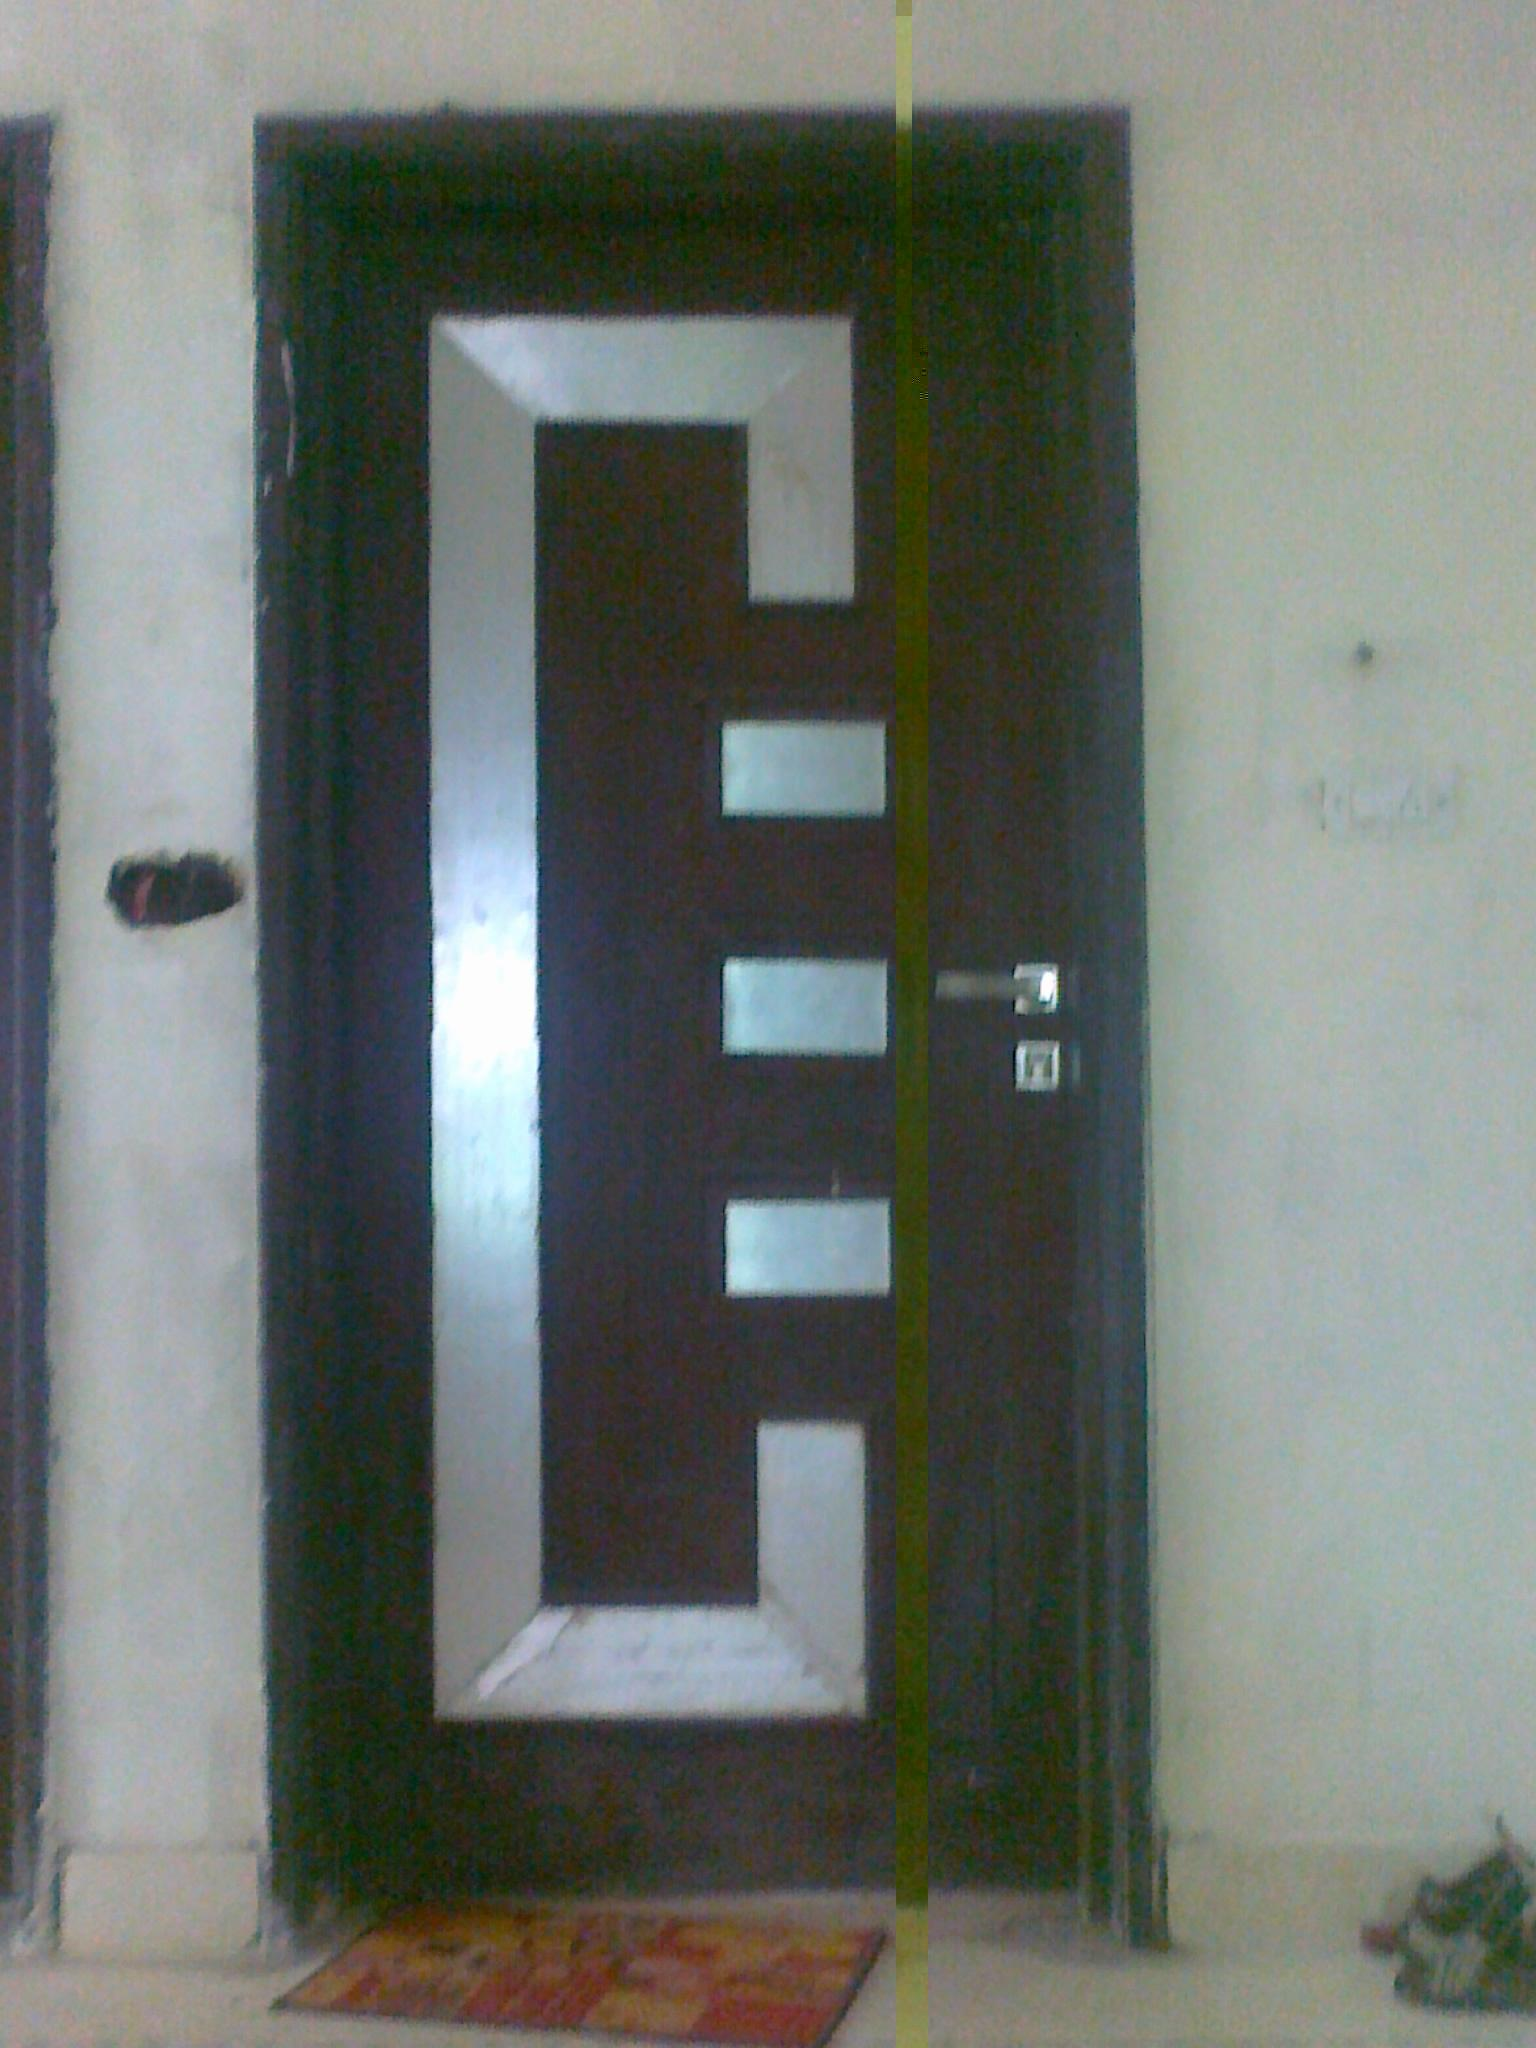 Door design gharexpert for Single main door designs